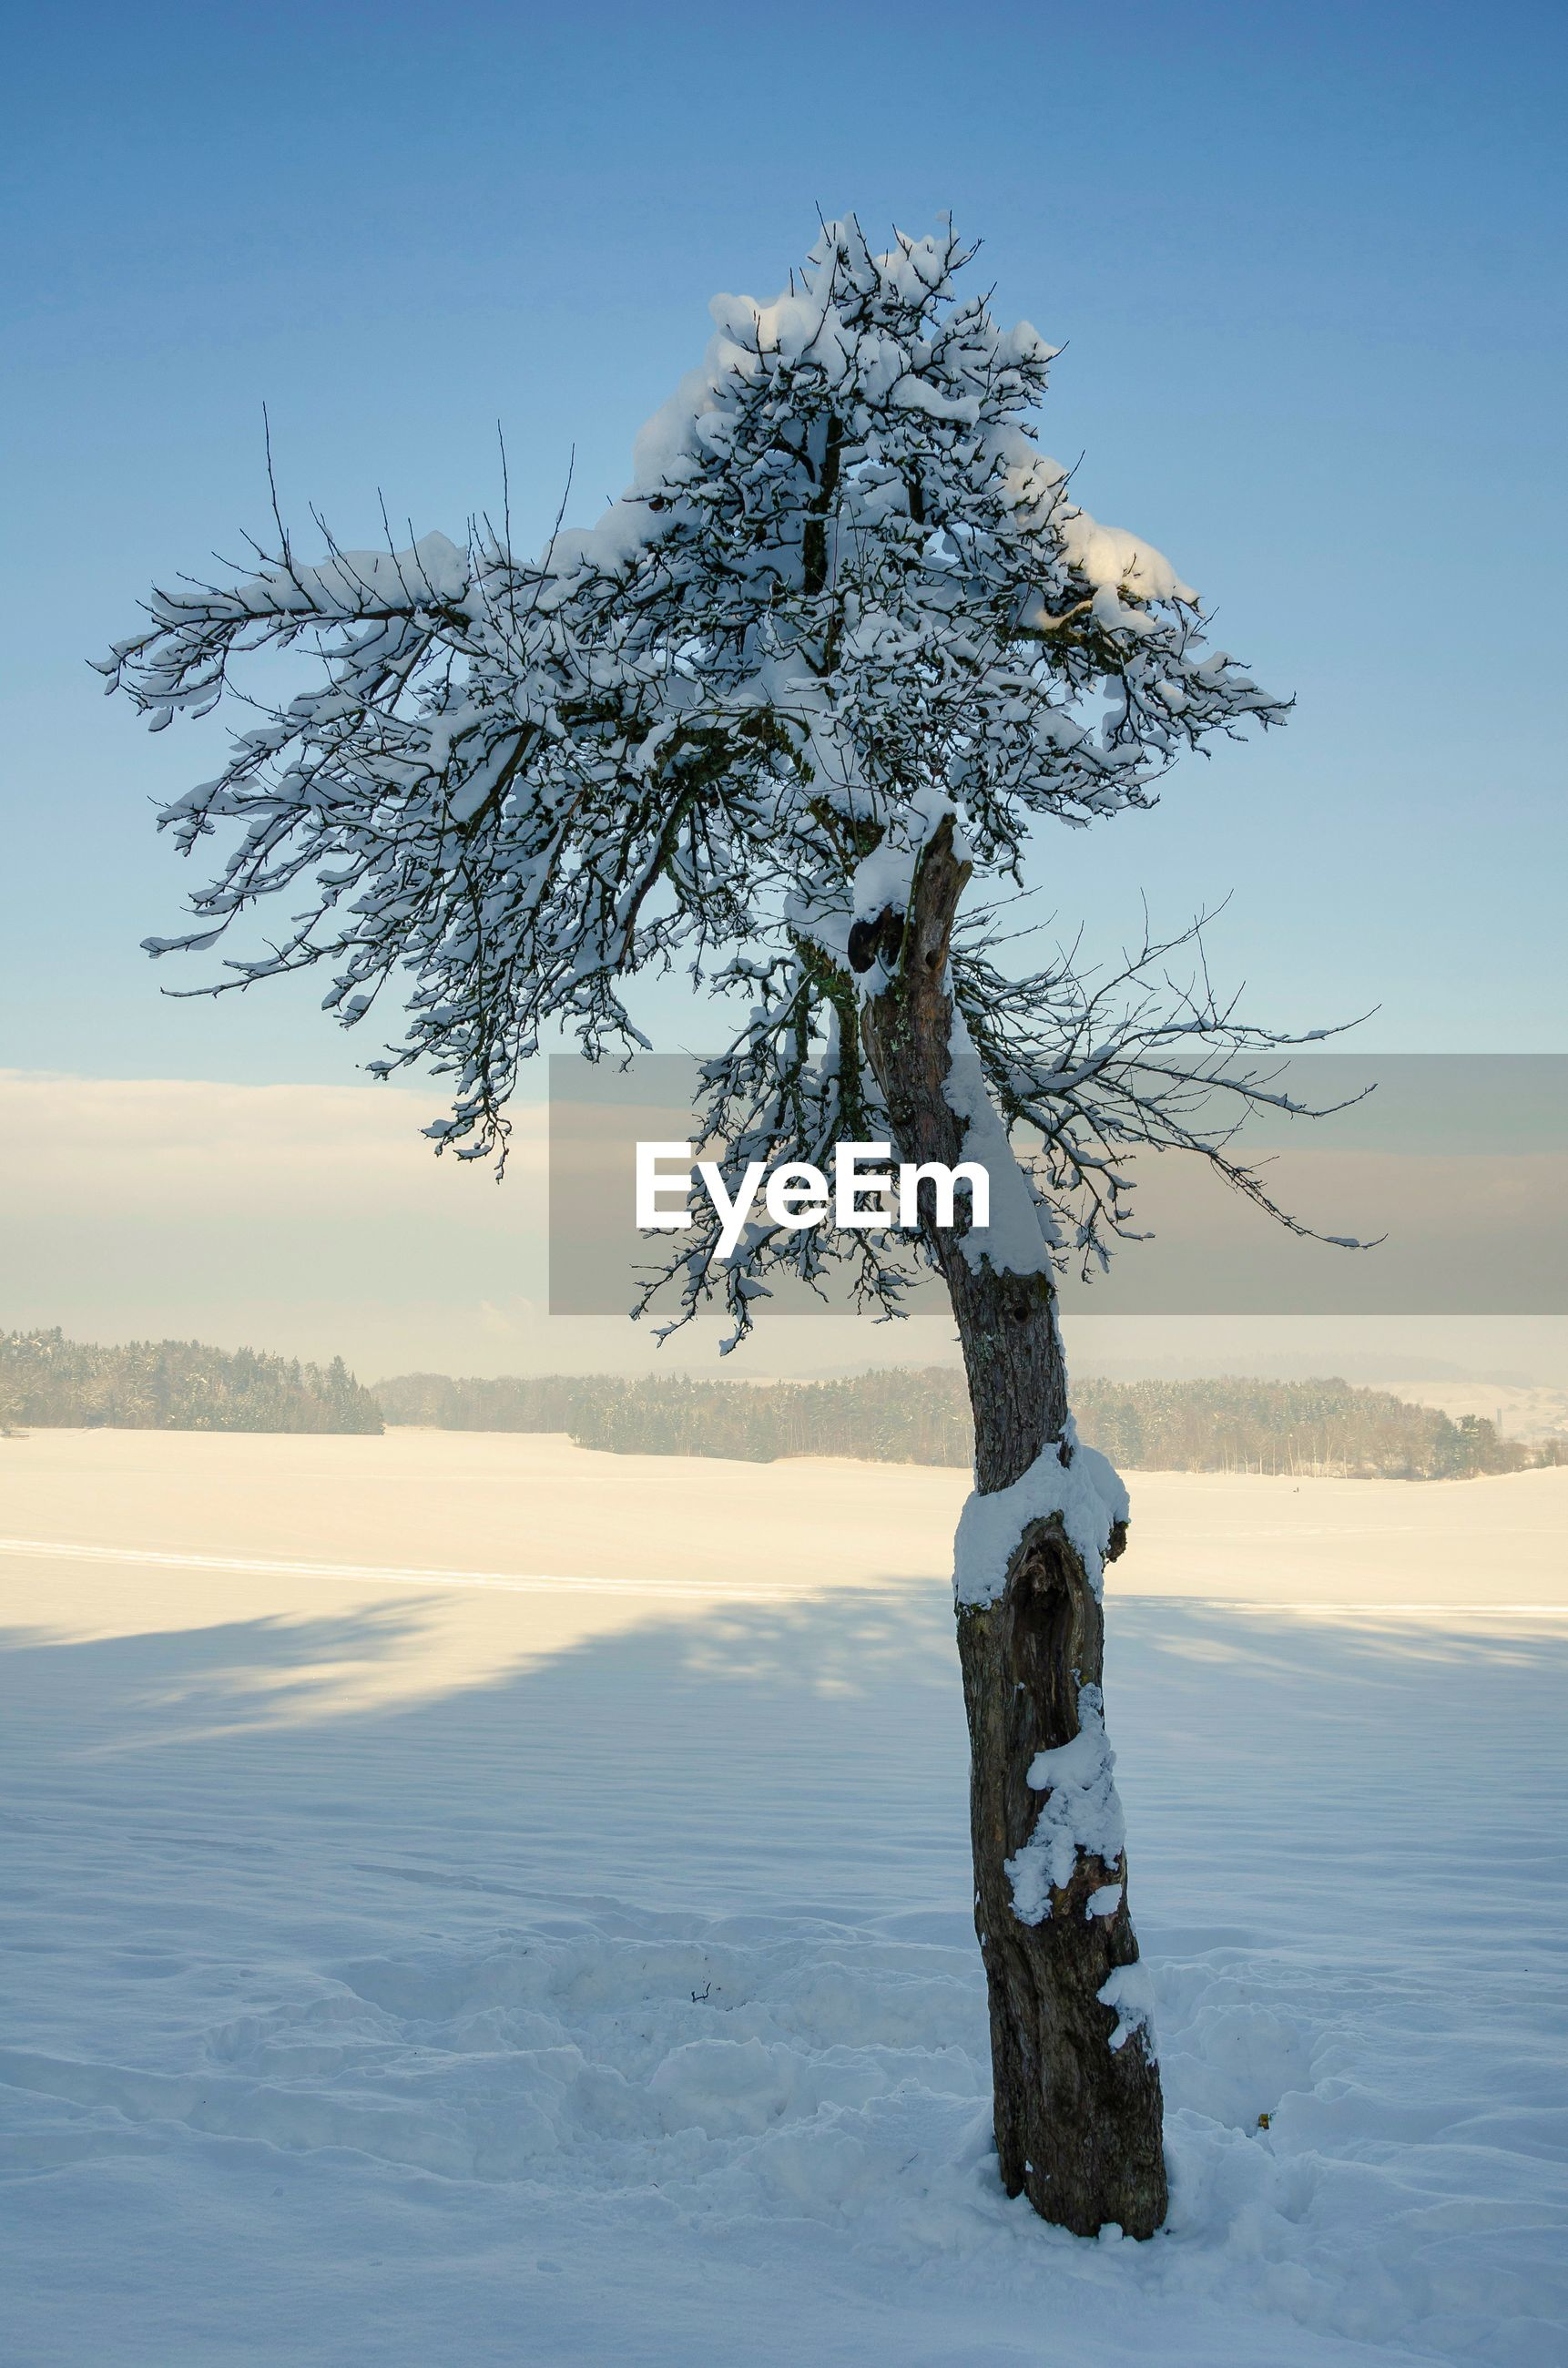 tree, tranquility, winter, snow, beauty in nature, nature, bare tree, cold temperature, landscape, tree trunk, branch, lone, no people, outdoors, scenics, day, sky